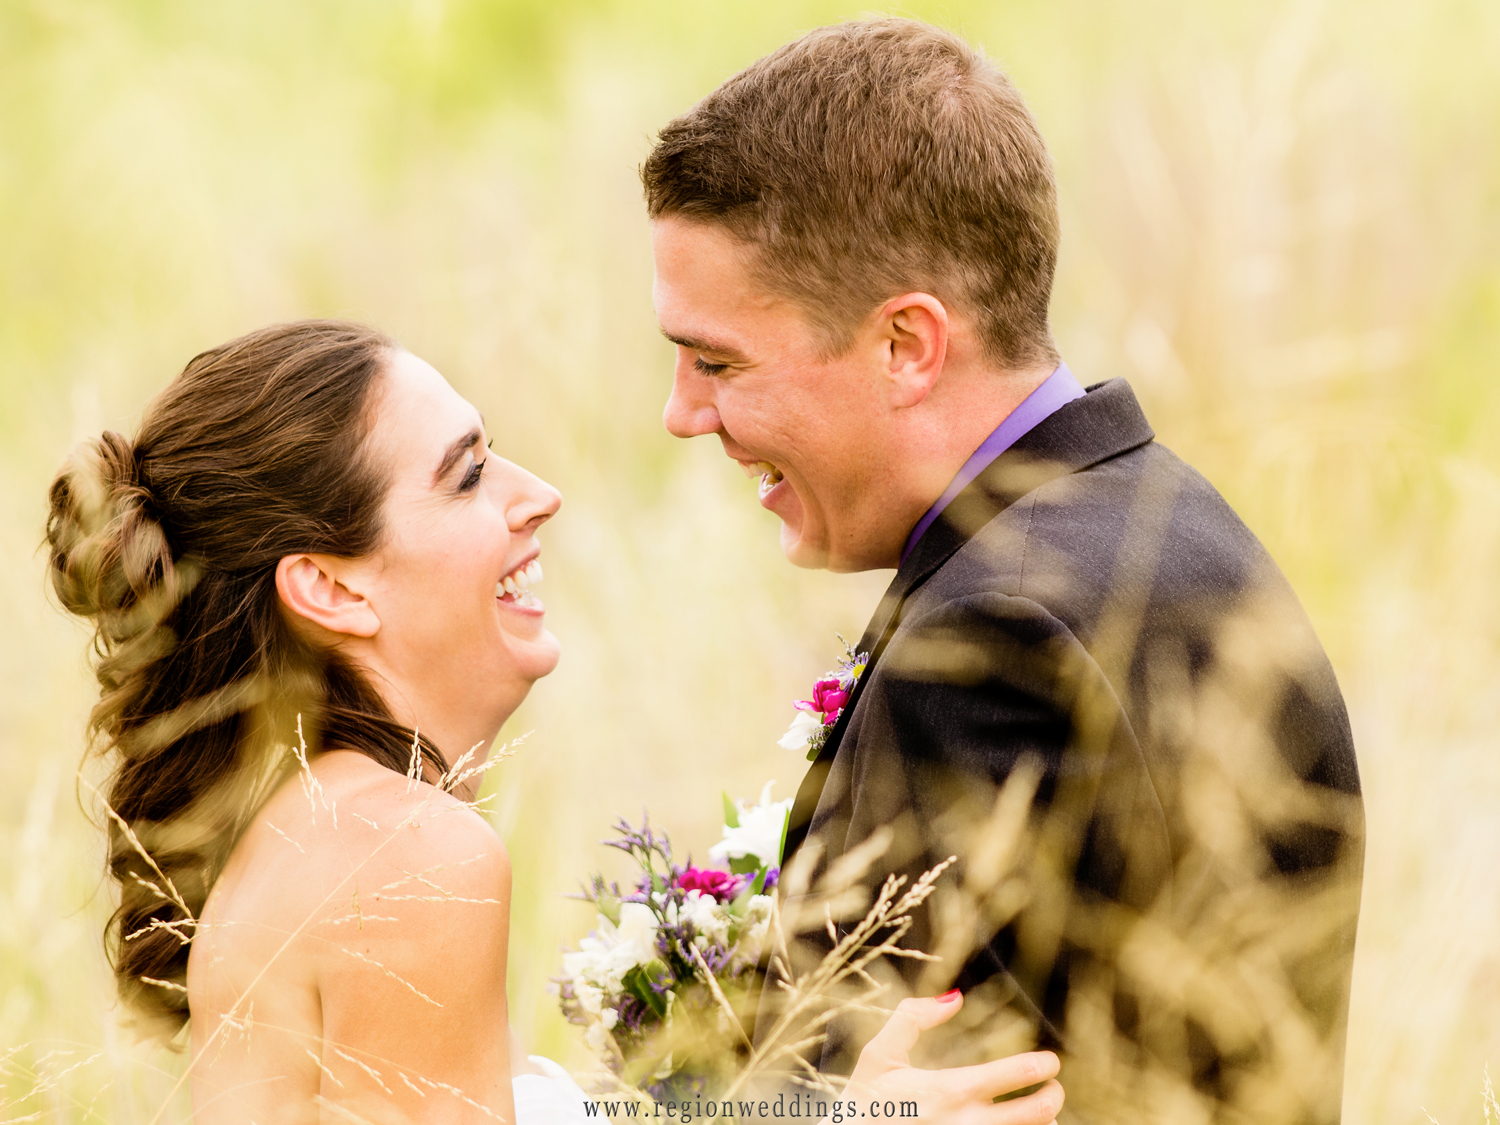 A newly married couple gazes at each other amongst the wildflowers of the Portage River Walk beach front.